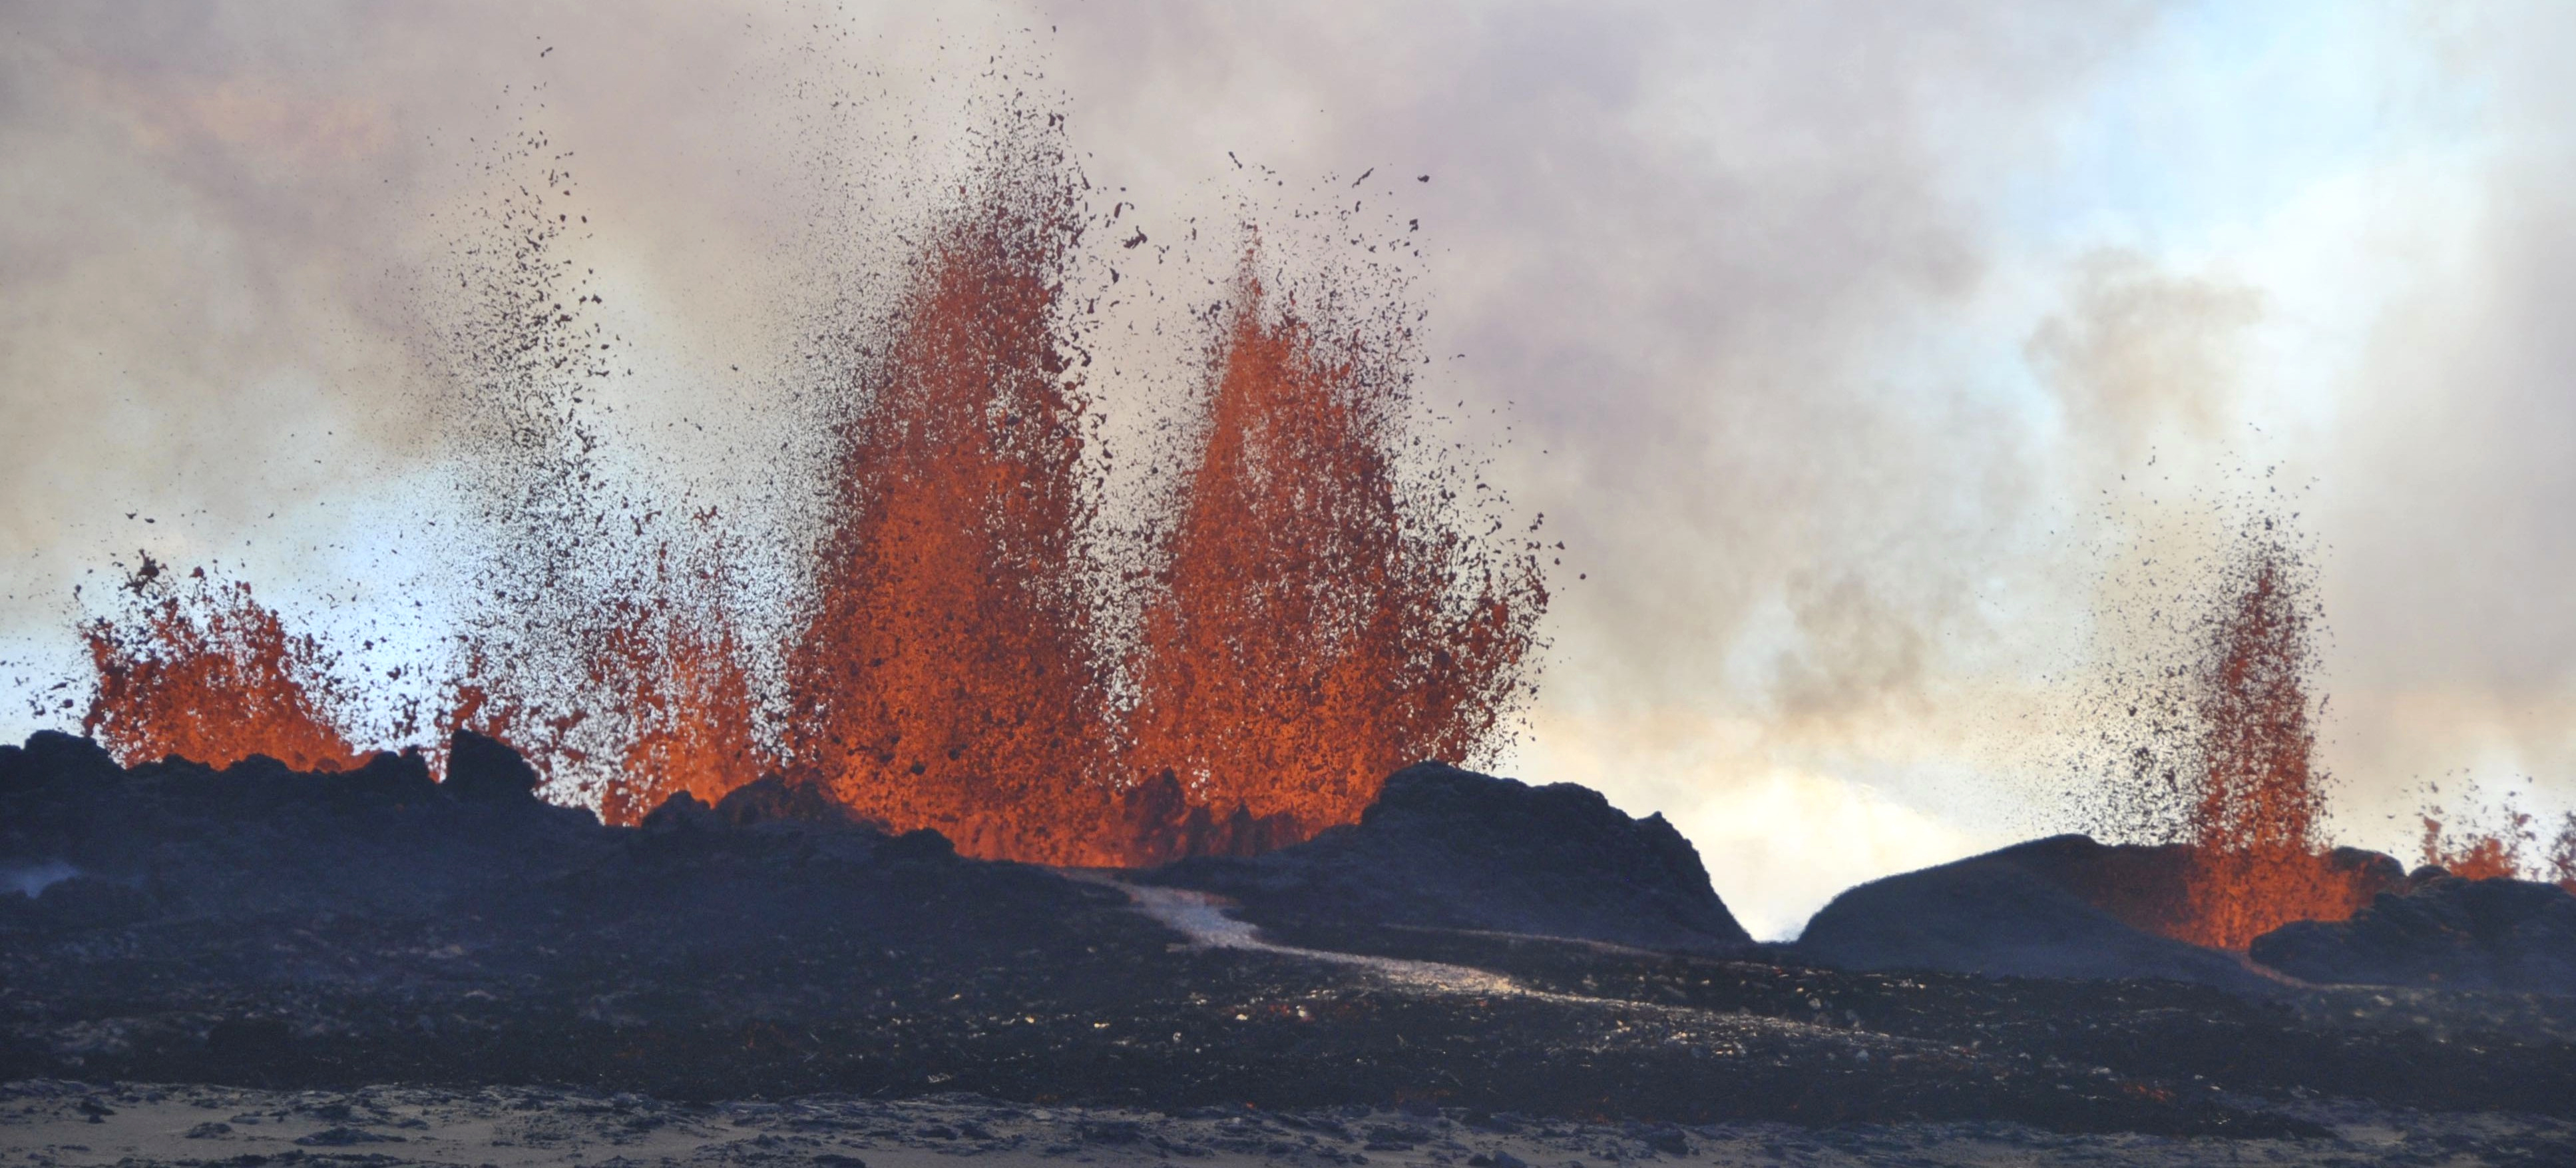 Chasing the volcano | University of Cambridge